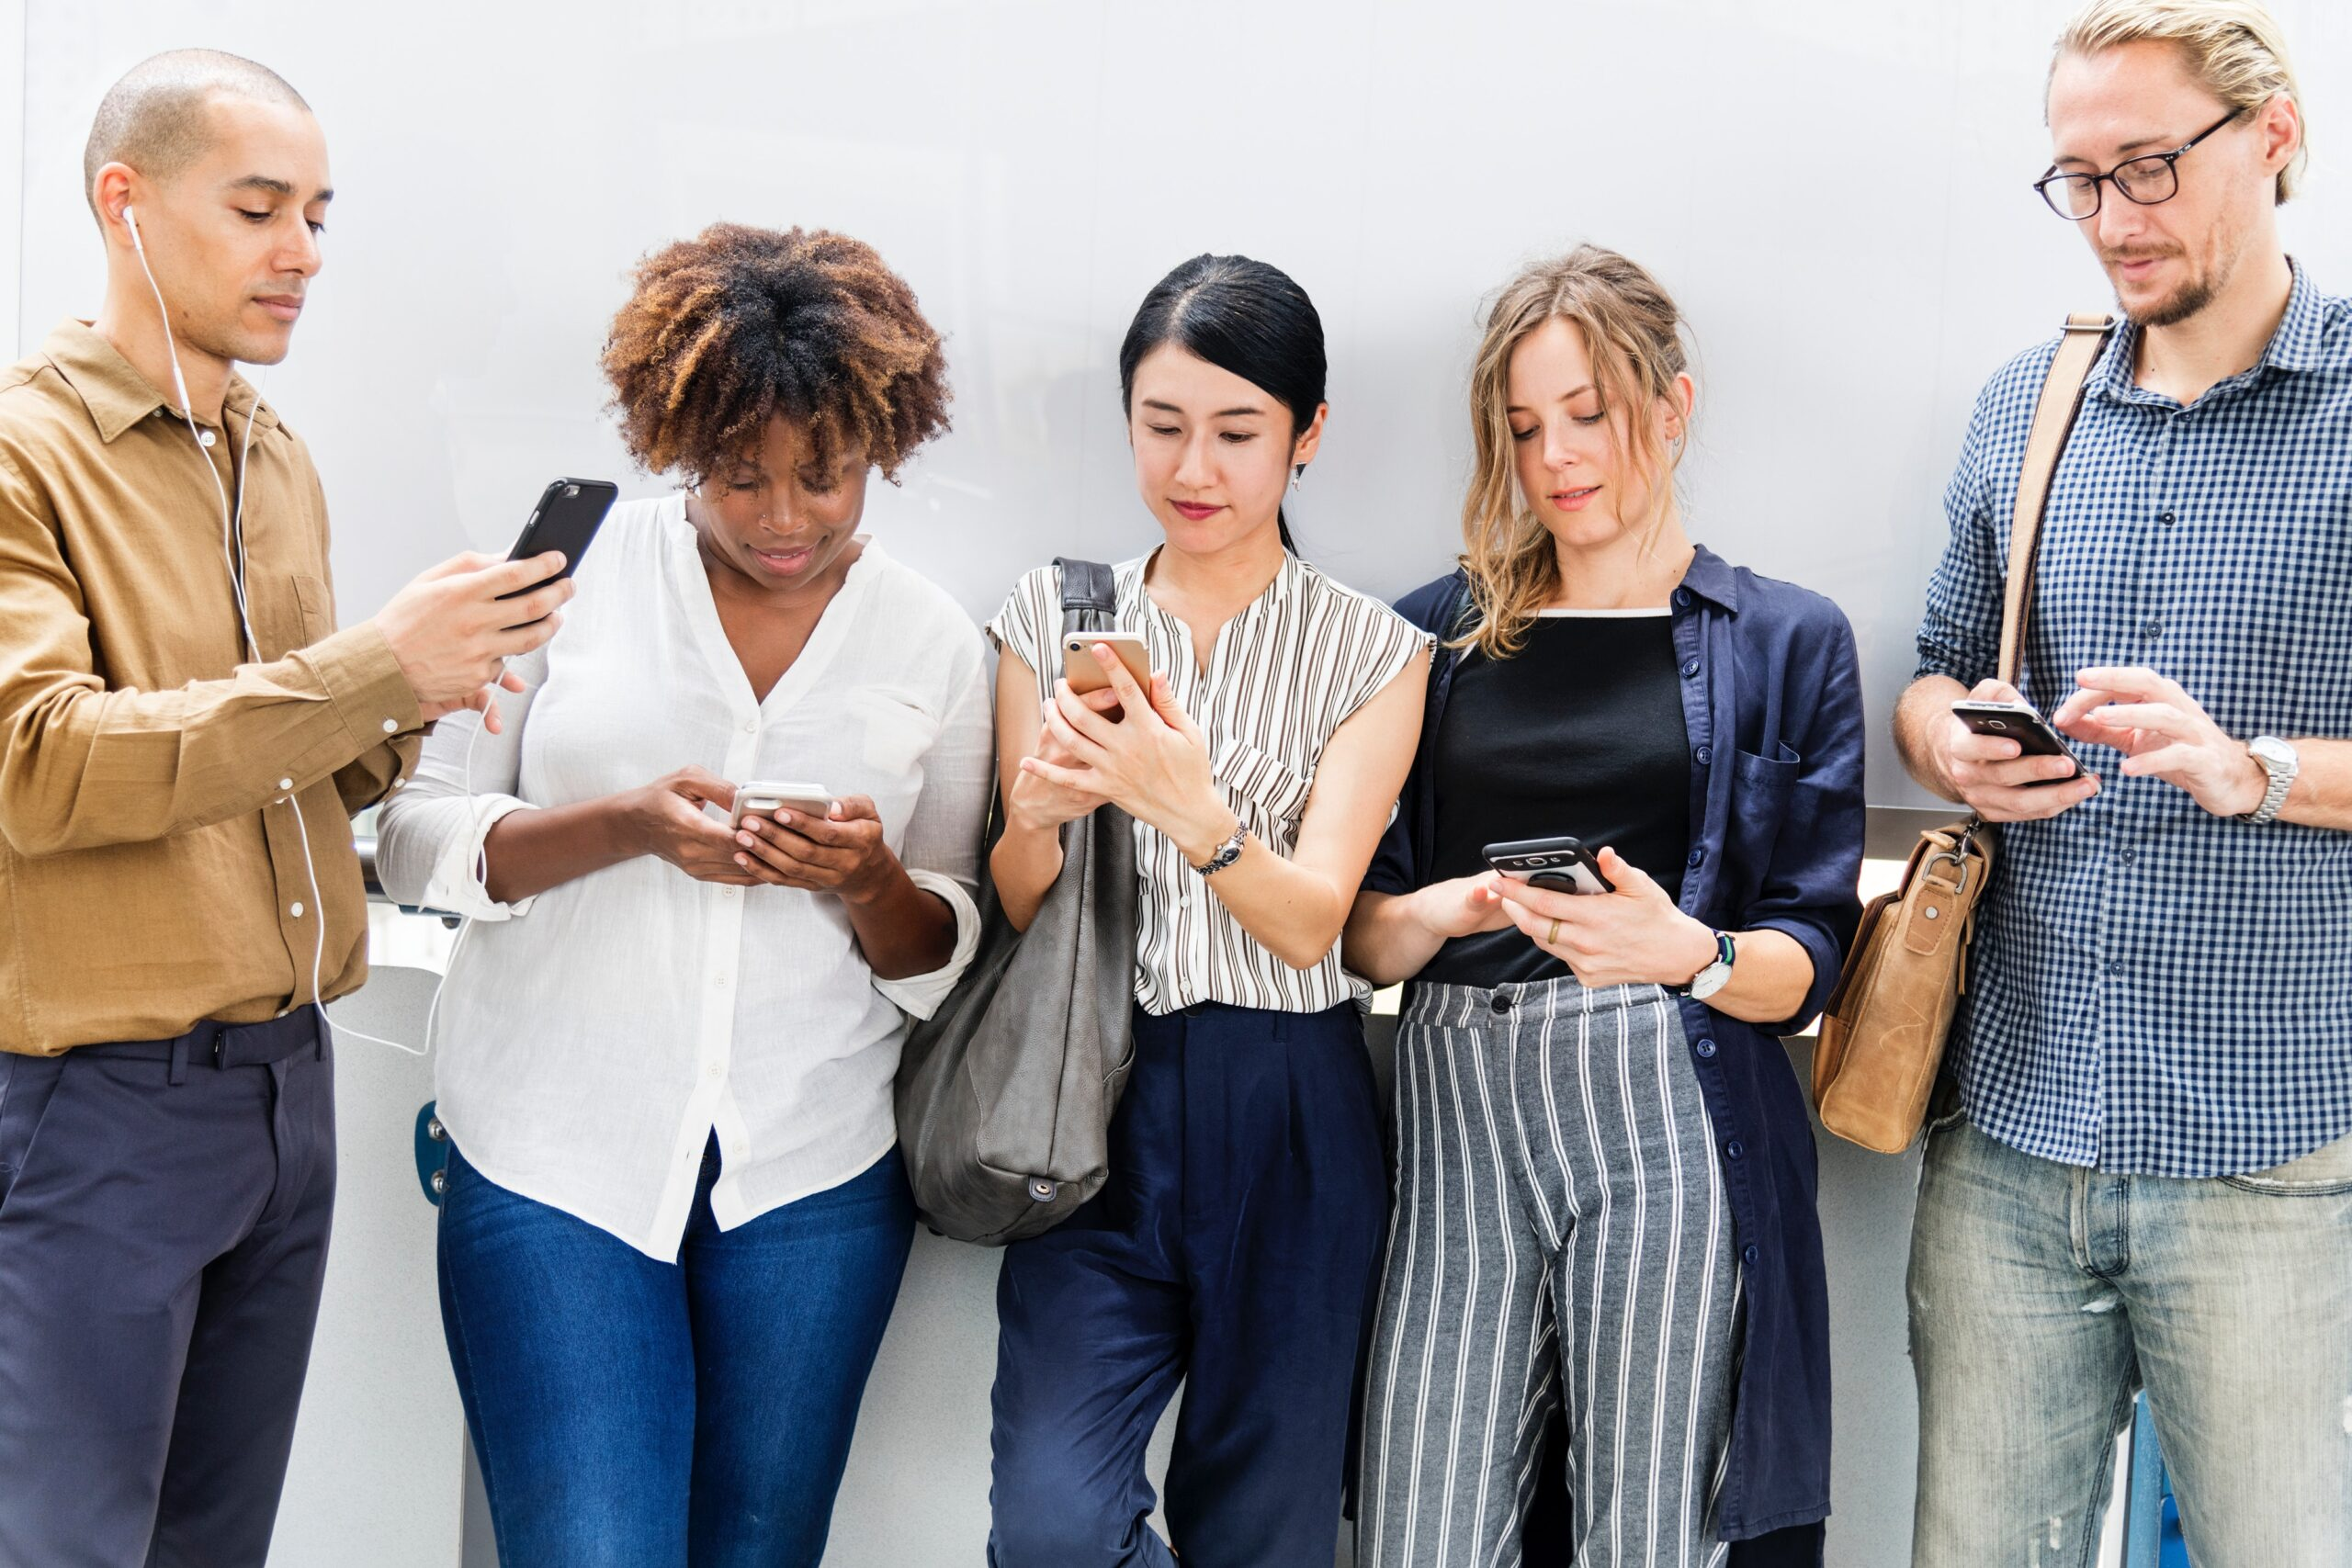 20 Tips for Connecting with Prospective Patients/Clients Using Social Media